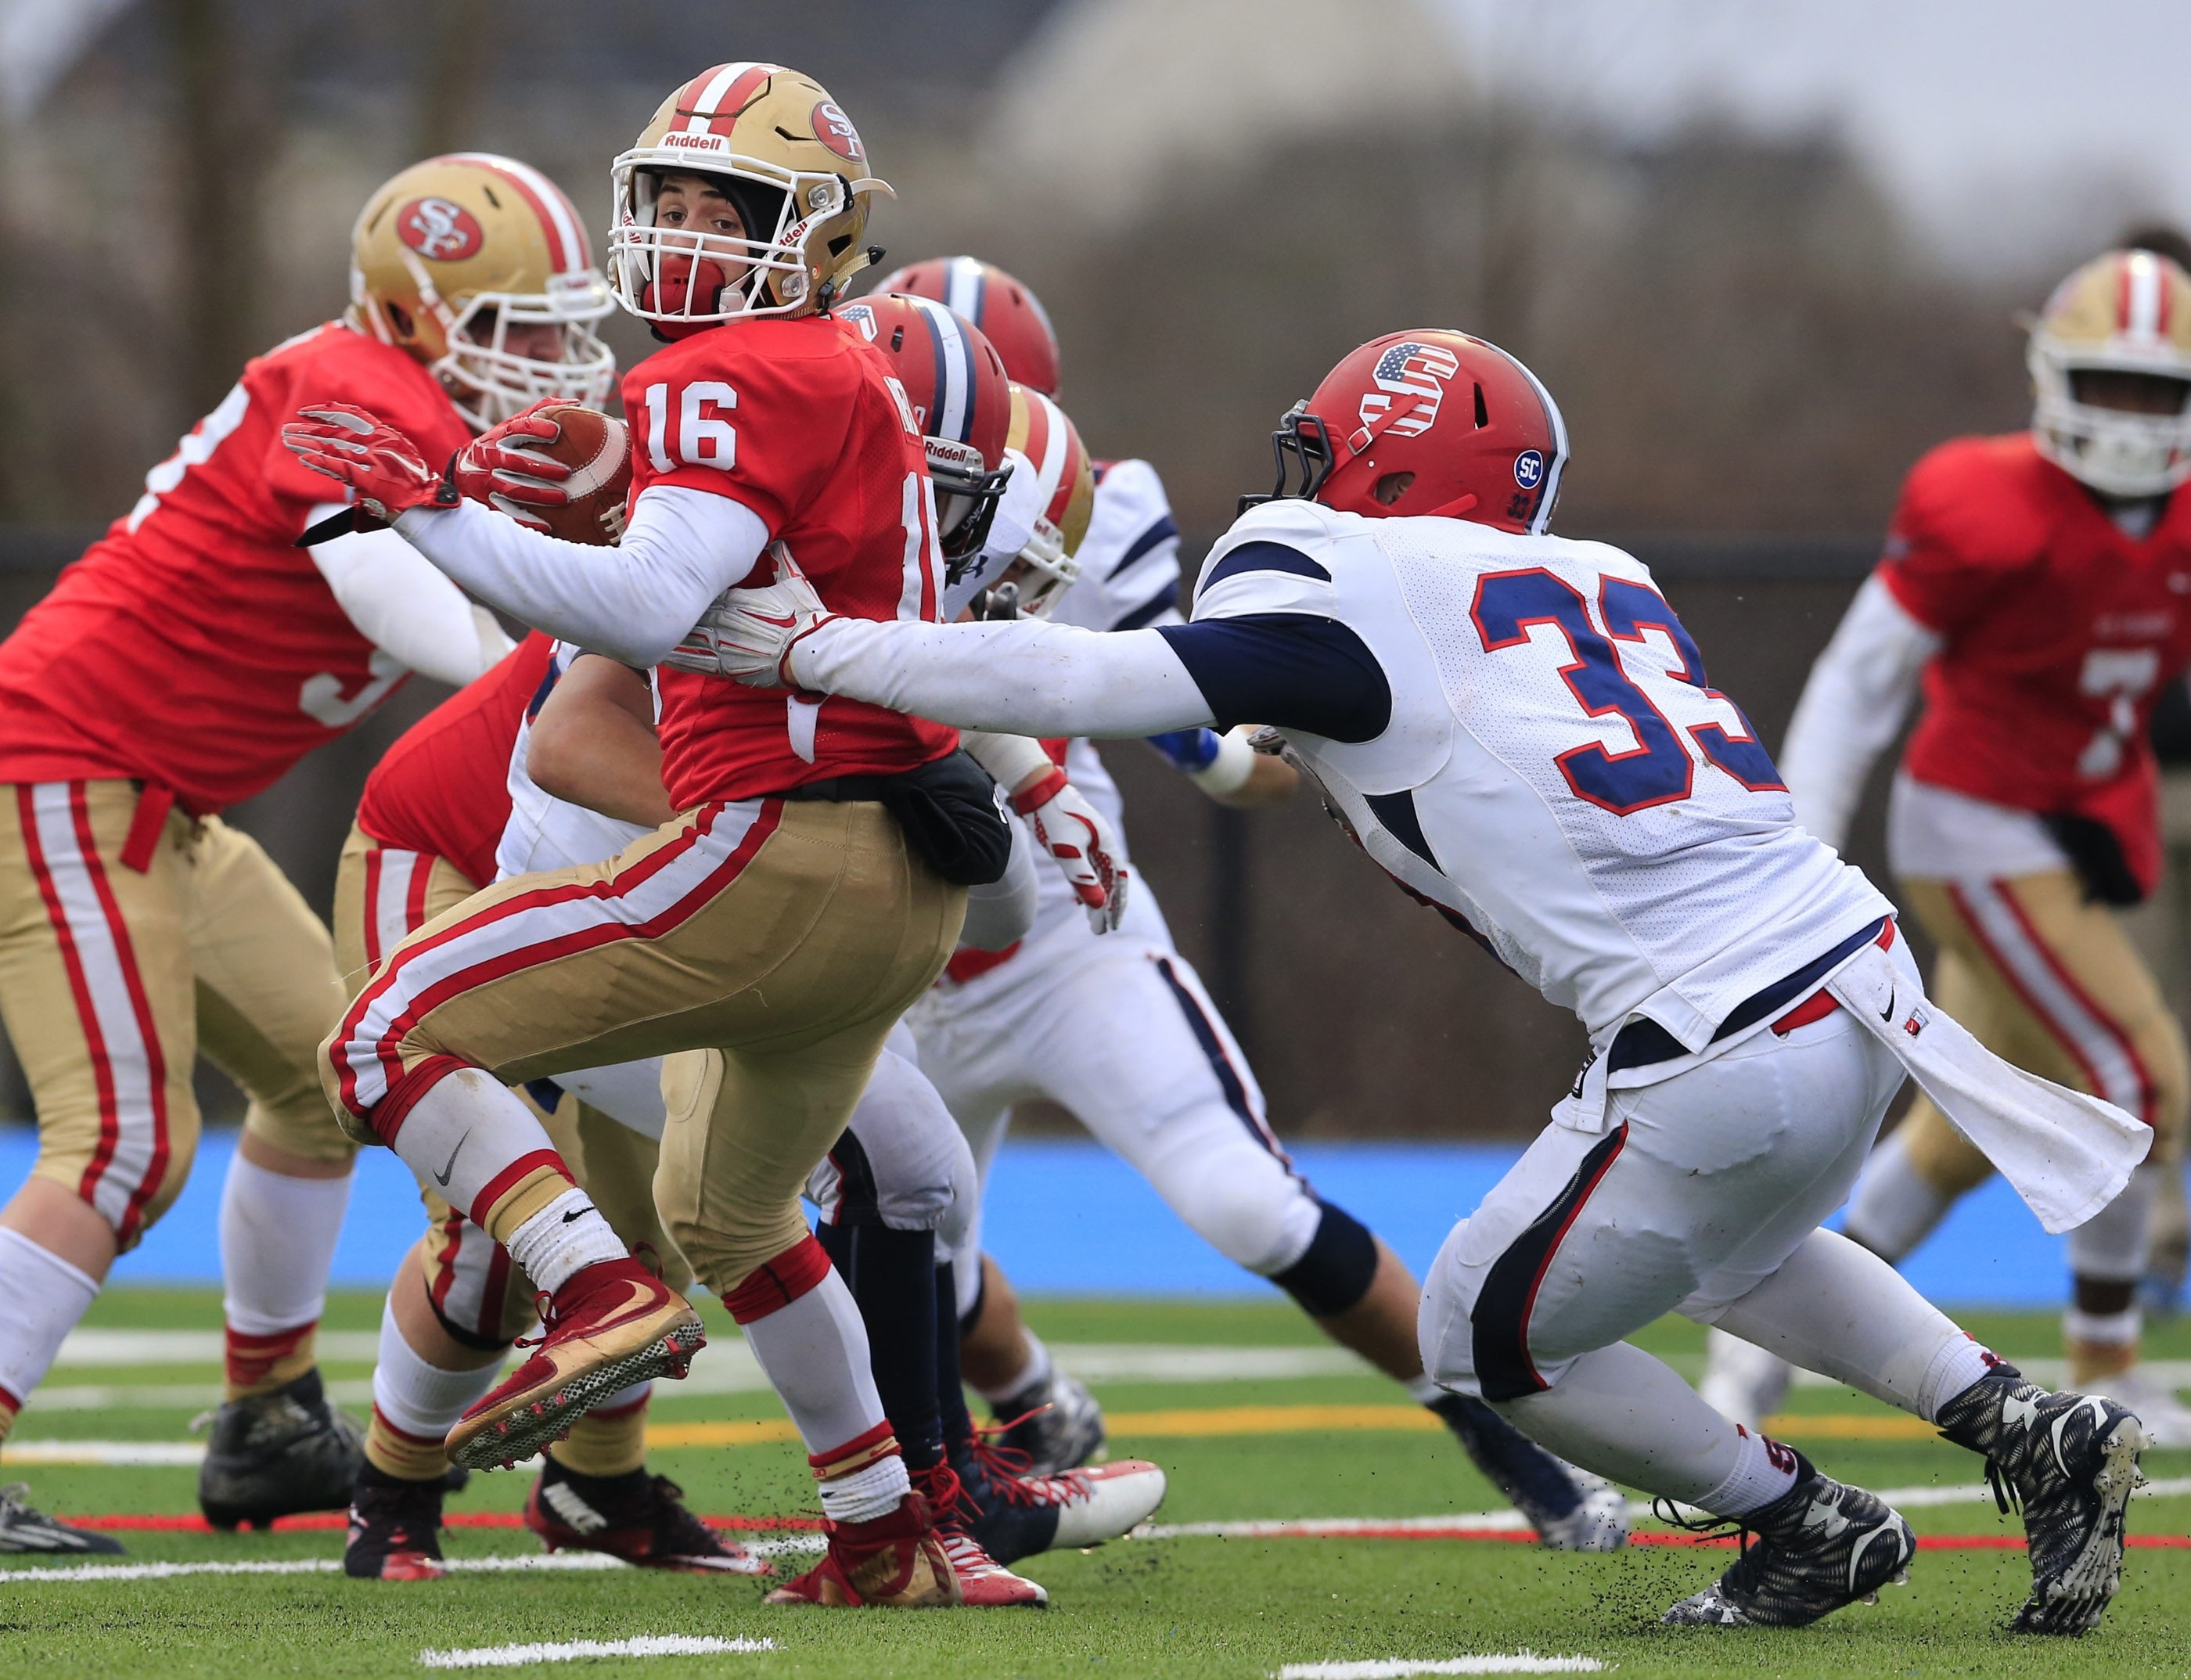 St. Francis running back Brandon Metz runs against Archbishop Stepinac during action in the State Catholic Championship game at Grand Island High School  on Saturday, Nov. 28, 2015. (Harry Scull Jr./Buffalo News)